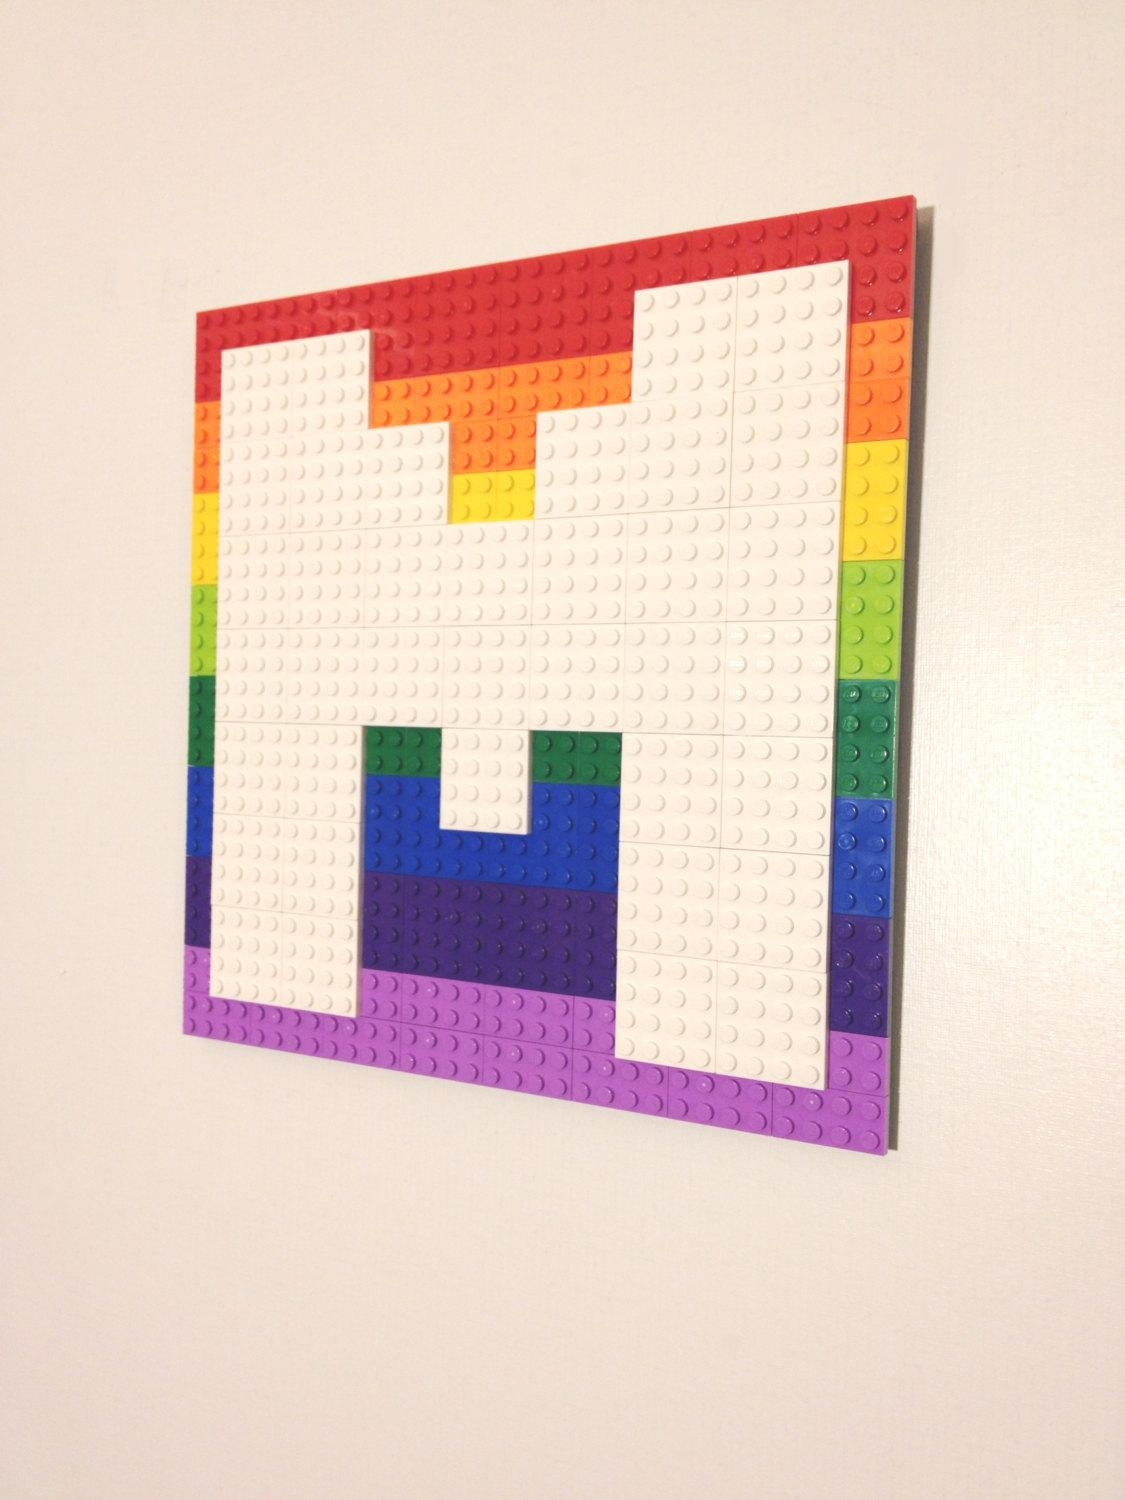 Pixel Letter Lego® Wall Art W/ Background Arcade Font Hanging Within Pixel Mosaic Wall Art (View 8 of 20)